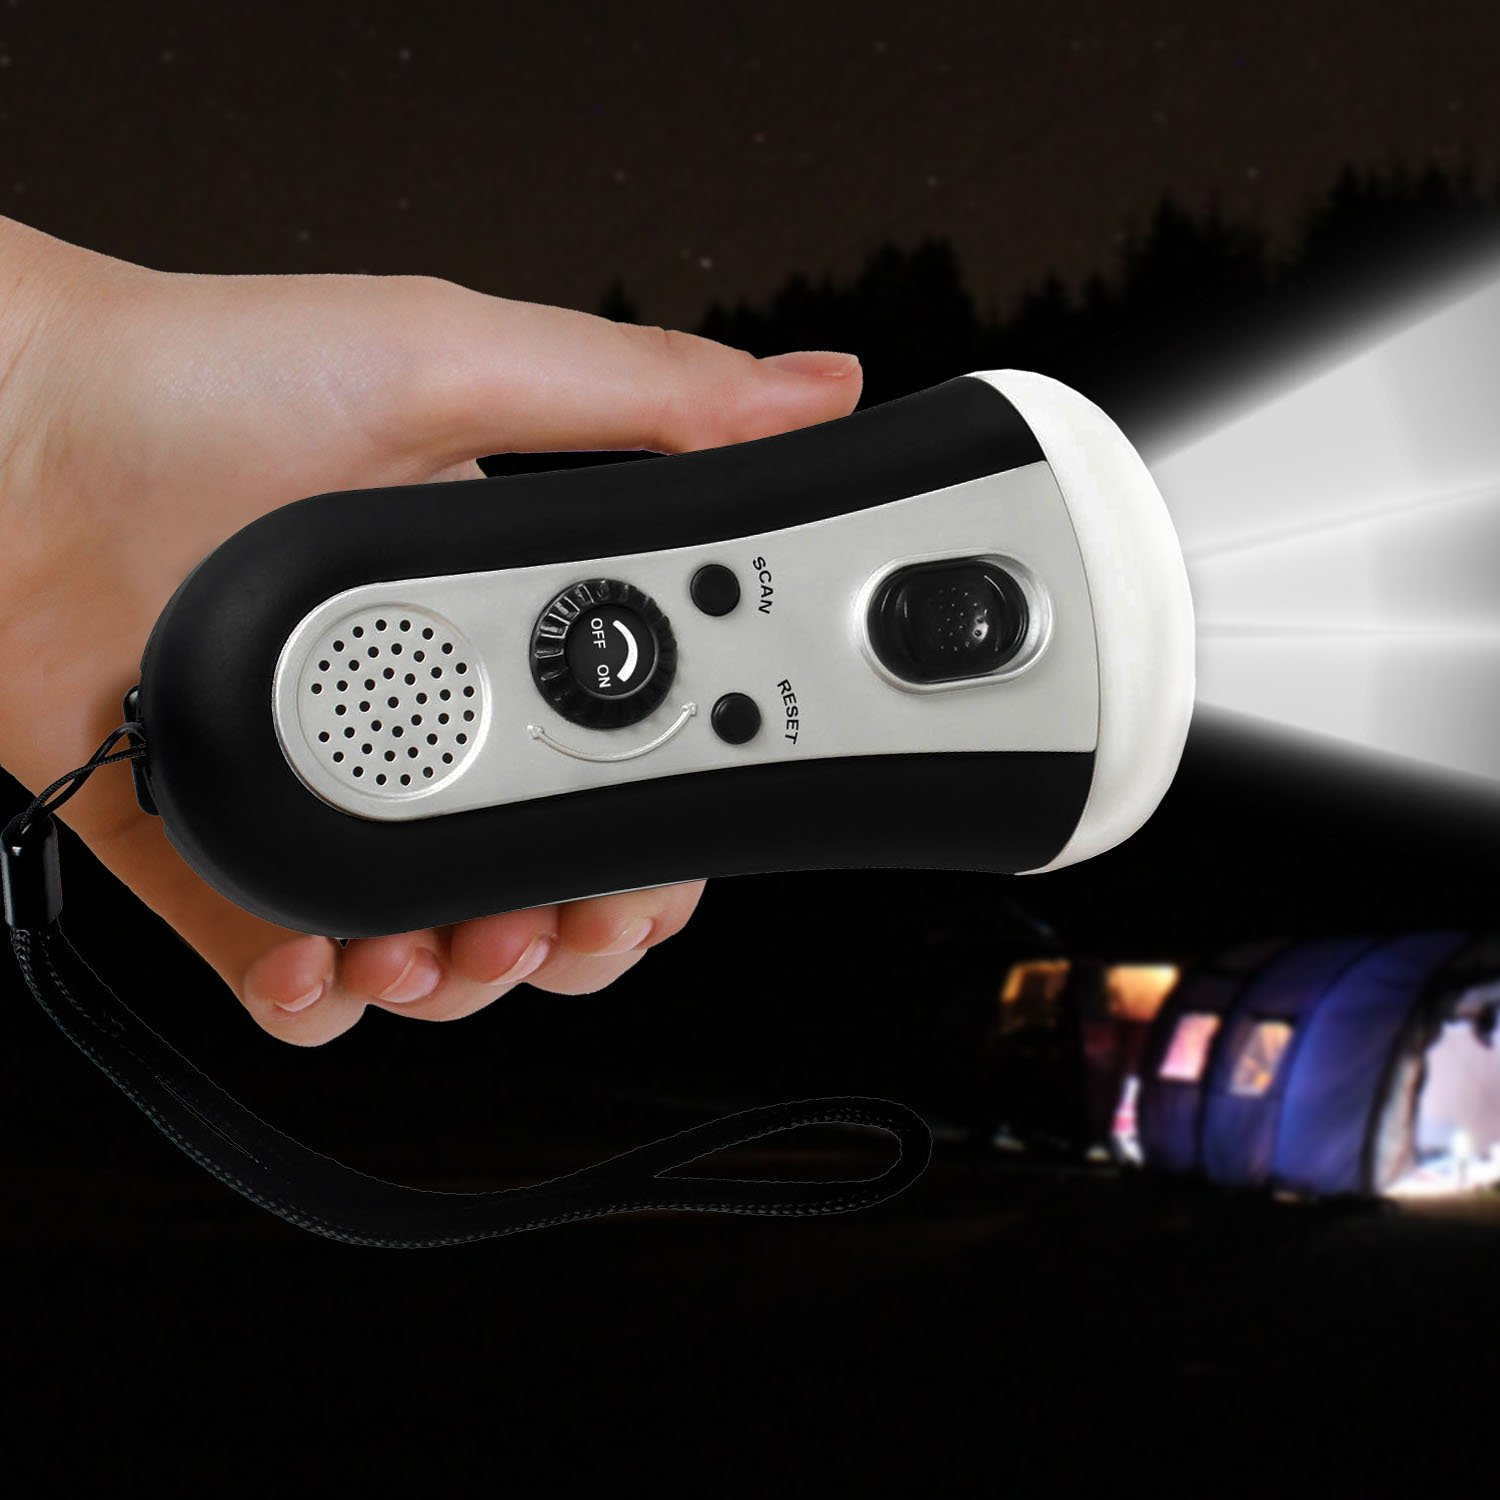 SolarEK Portable Hand Crank Power Radio W/ Super Bright LED Flashlight. Great for Camping Tent Outdoor Mountain Hiking Trekking Climbing Emergency Light Power Hurricane Storm Outages.